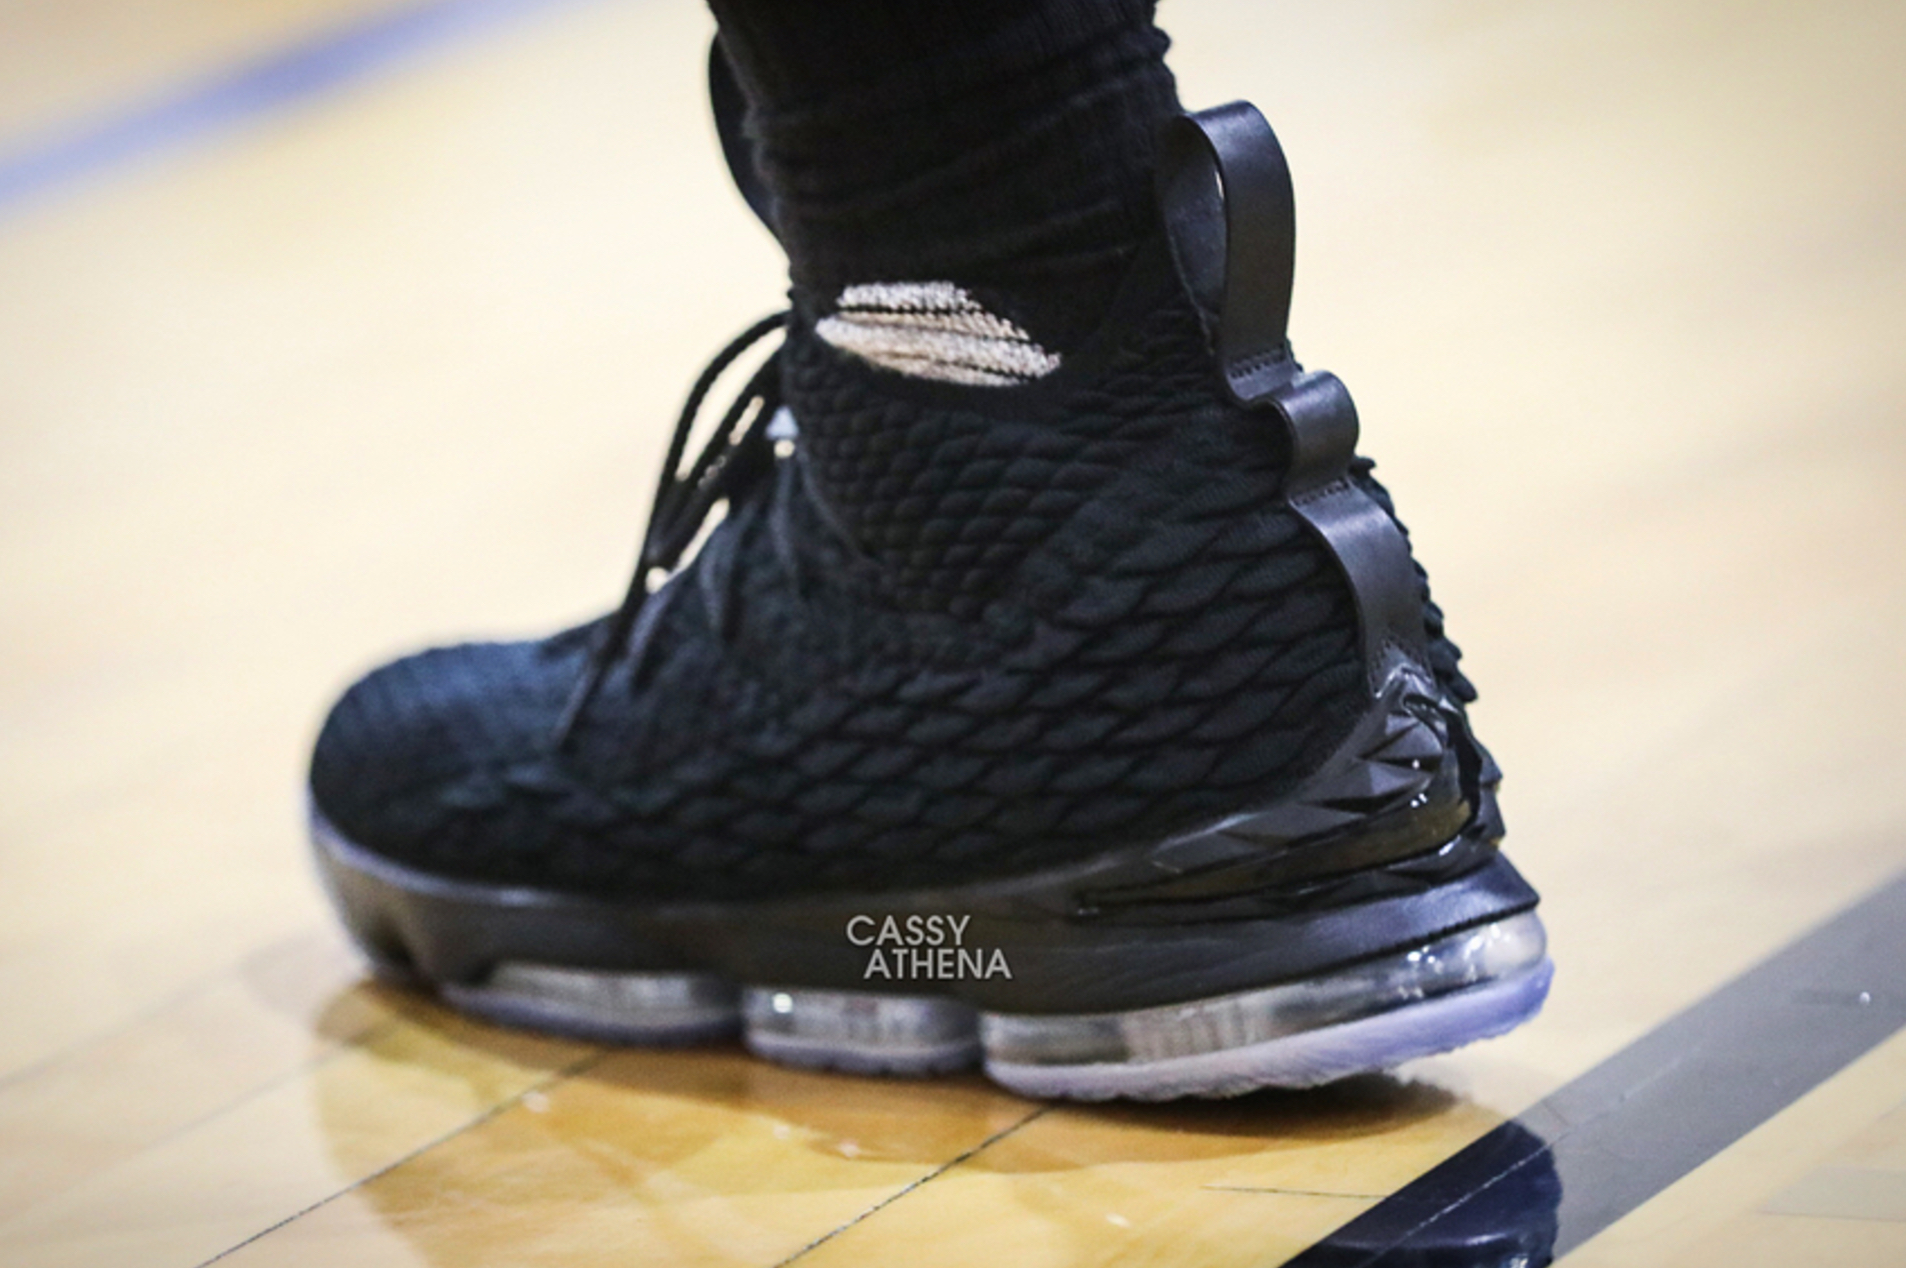 huge selection of 9b1c4 95671 There's a Triple Black LeBron 15 - WearTesters